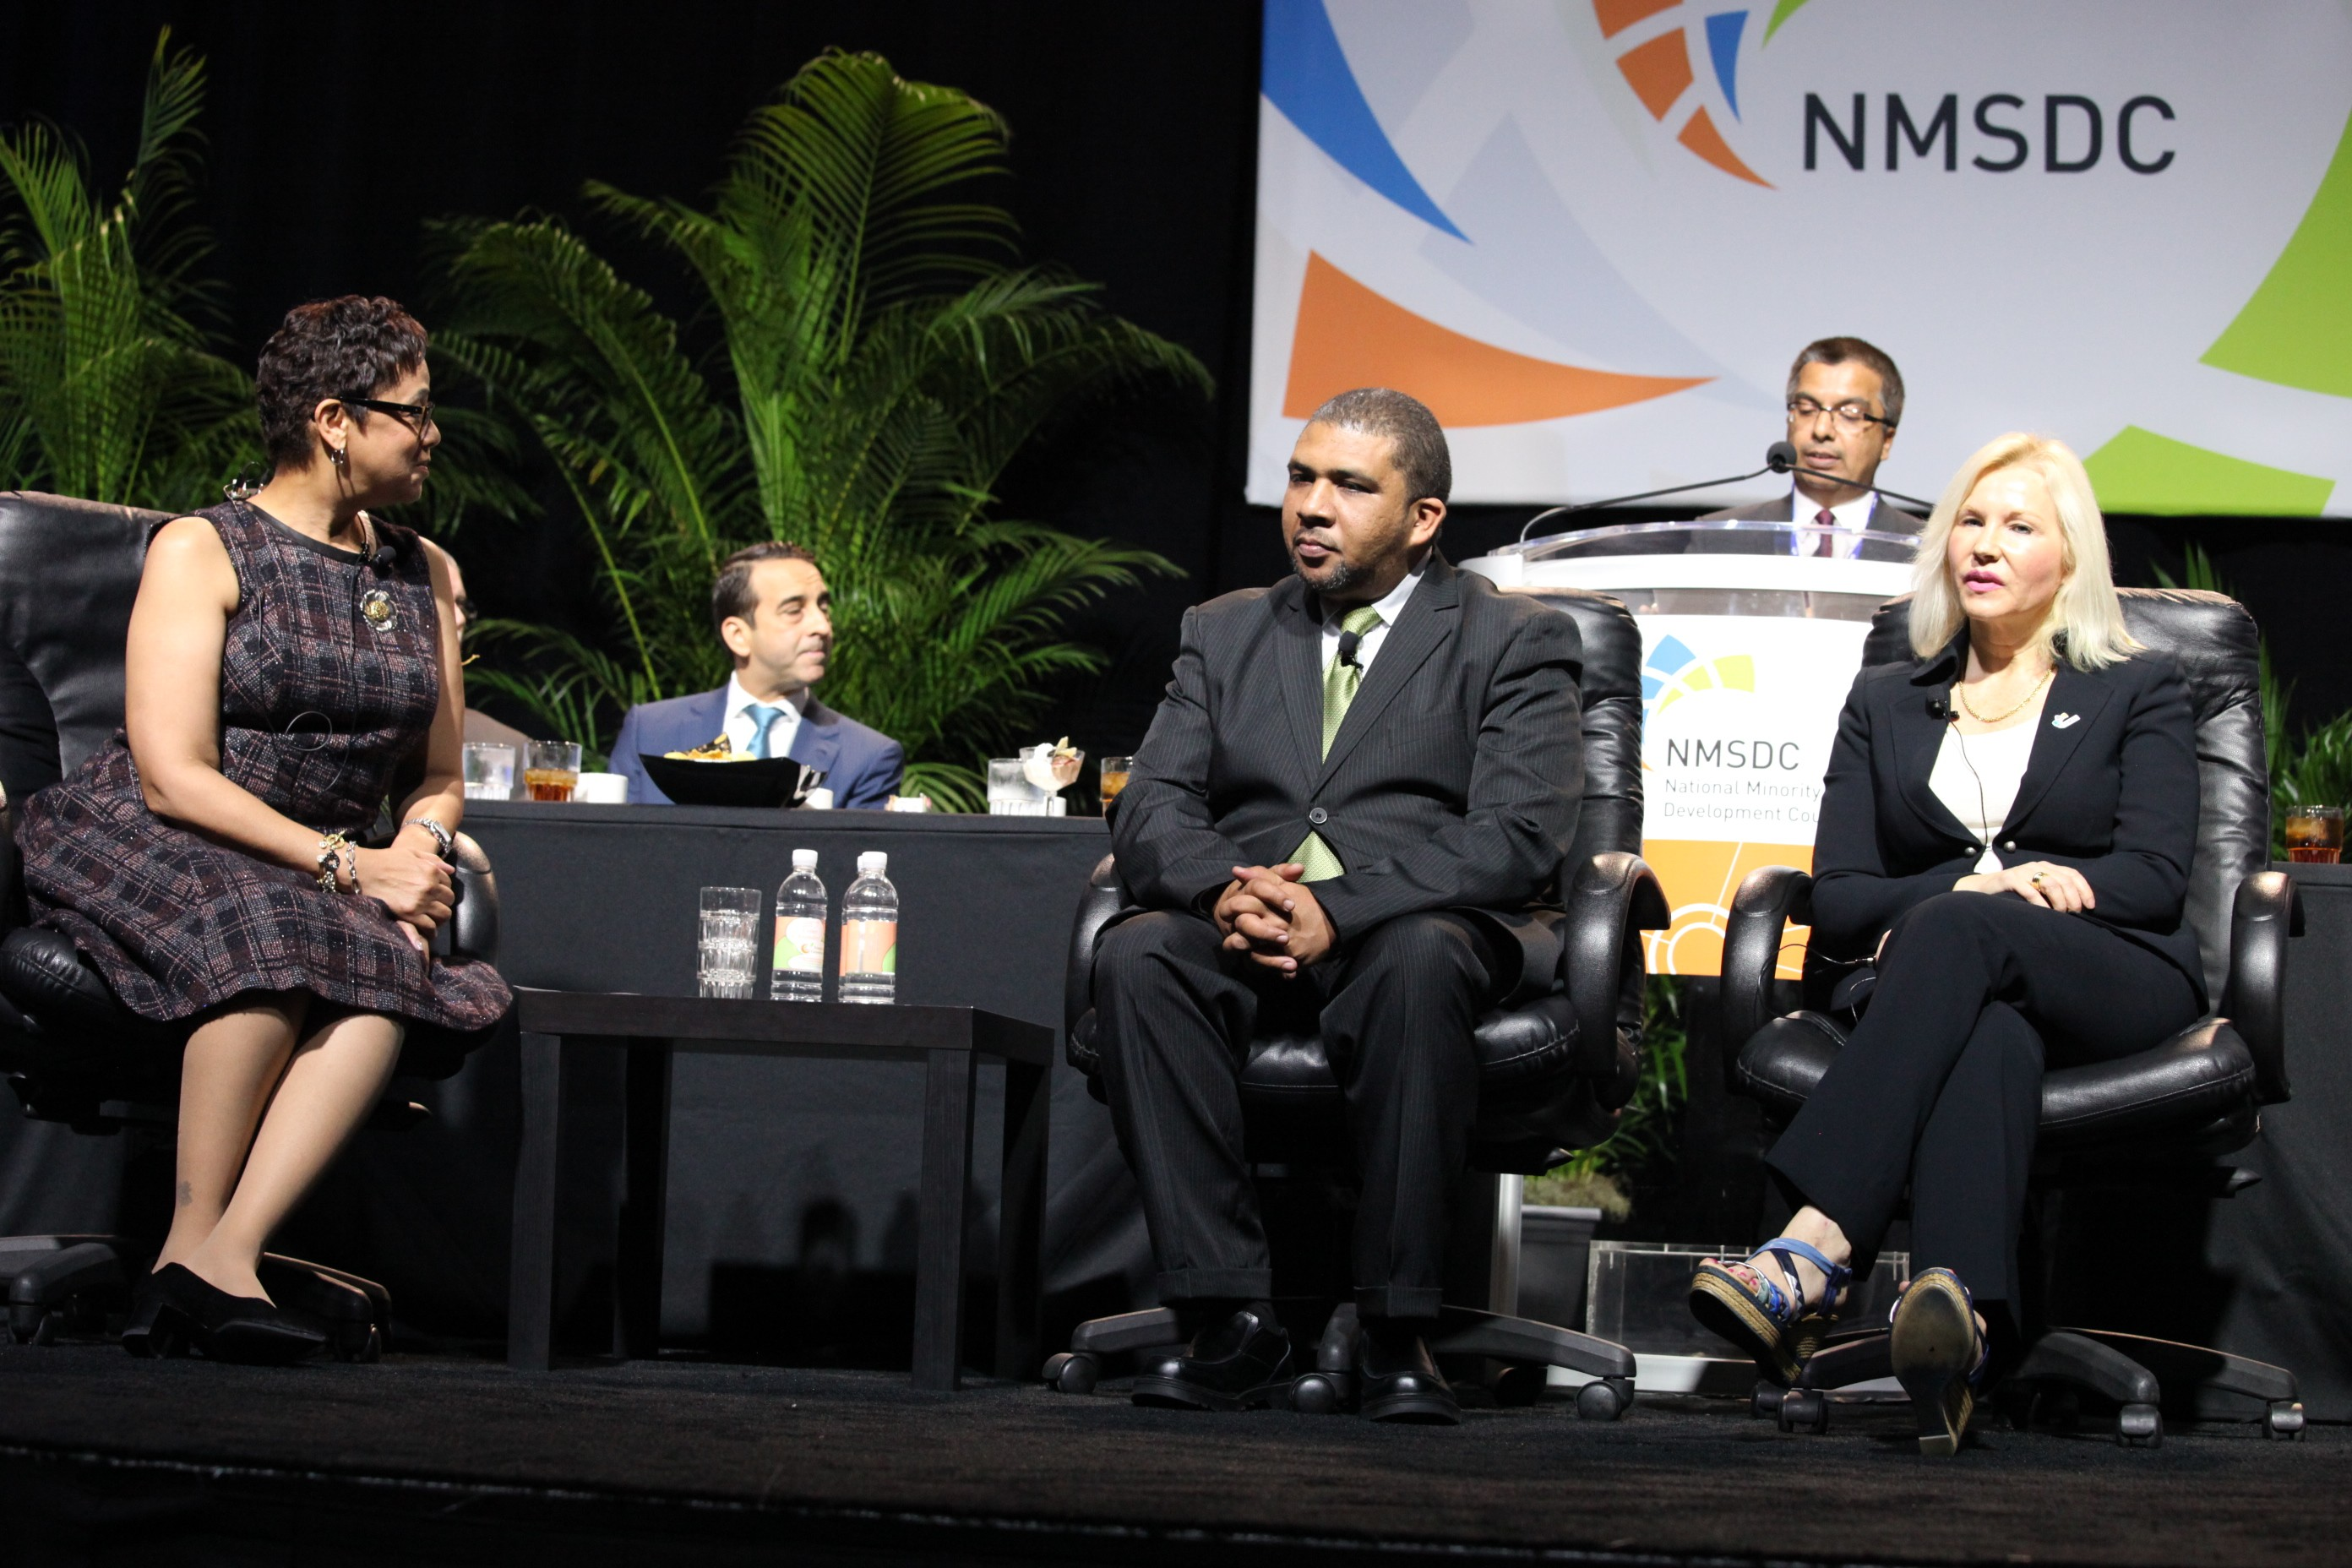 NMSDC President Joset Wright-Lacy with luncheon panelist Gary Joseph of the South African Supplier Diversity Council and Carmen Castillo of SDI International Corp.